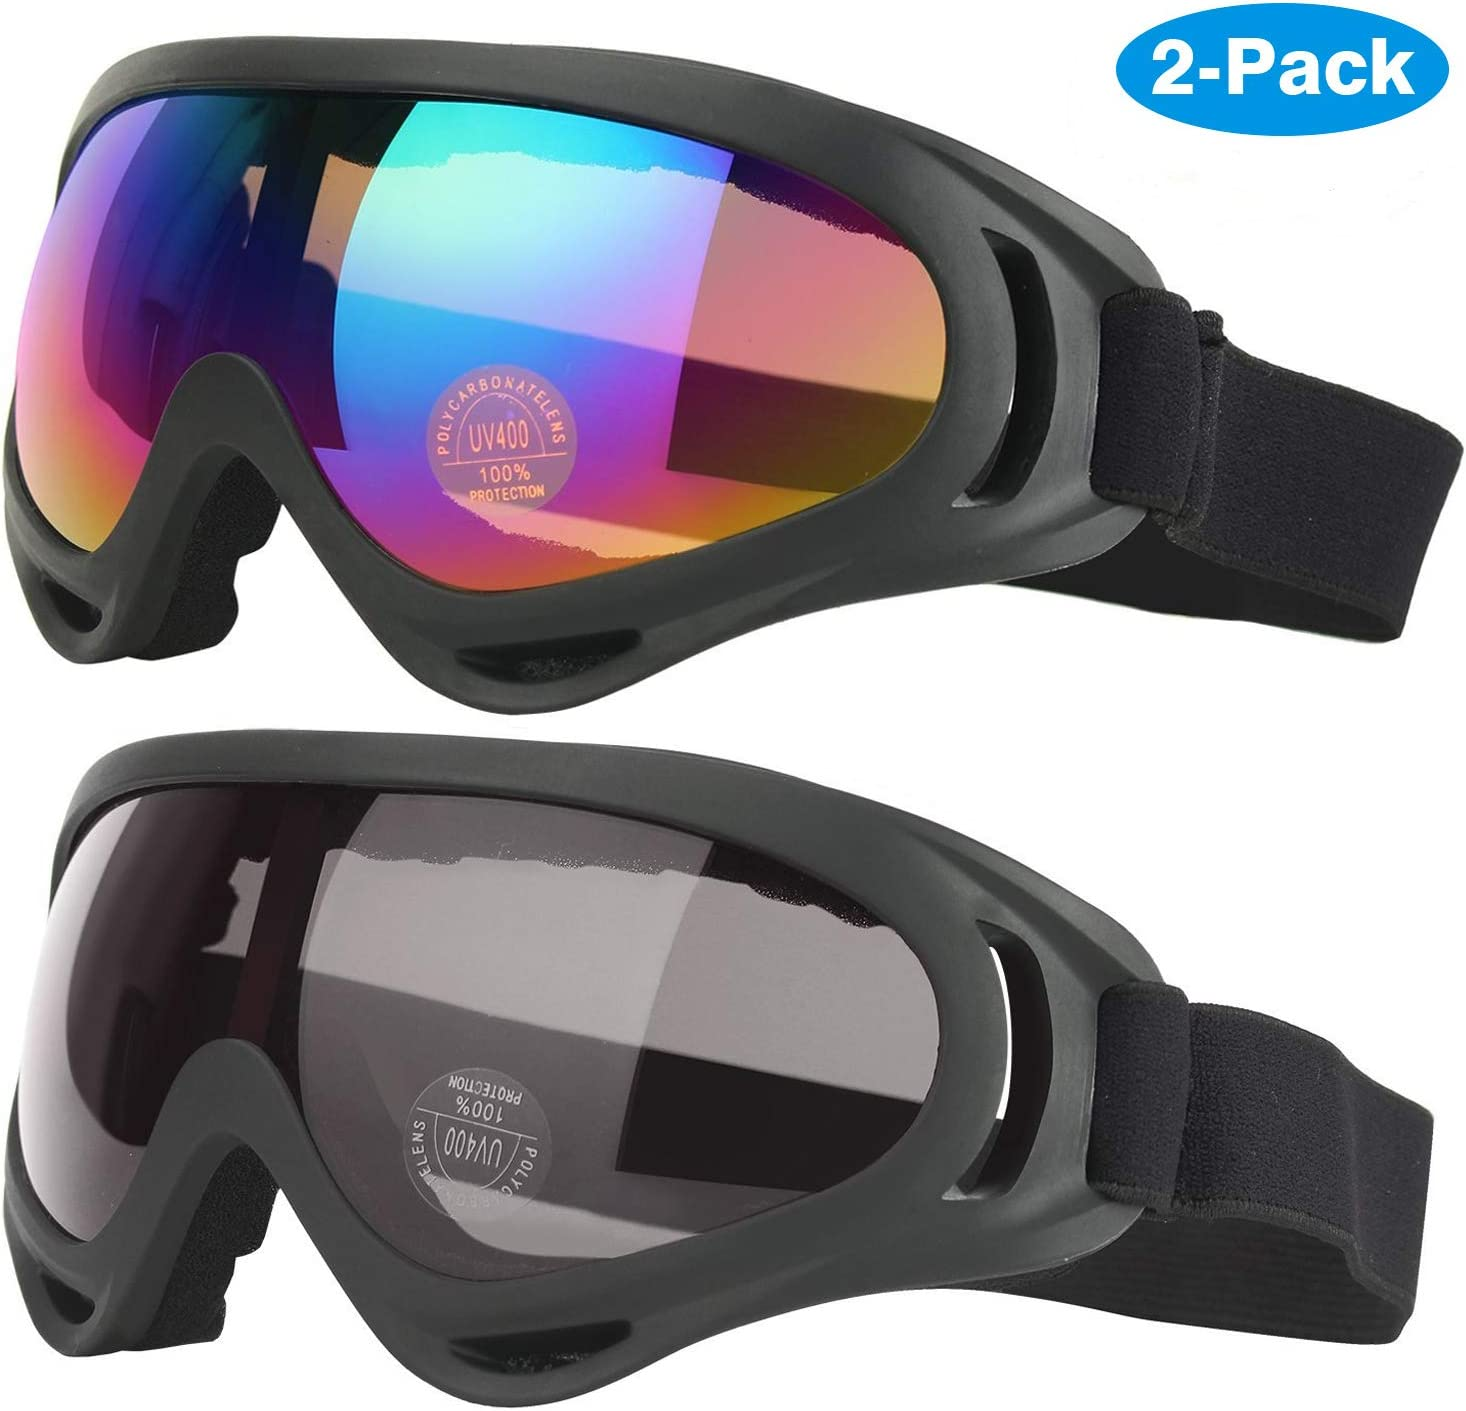 Elimoons Ski Goggles, Pack of 2, Snowboard Goggles for Kids, Boys Girls, Youth, Men Women, Helmet Compatible with UV 400 Protection, Wind Resistance, Anti-Glare Lenses